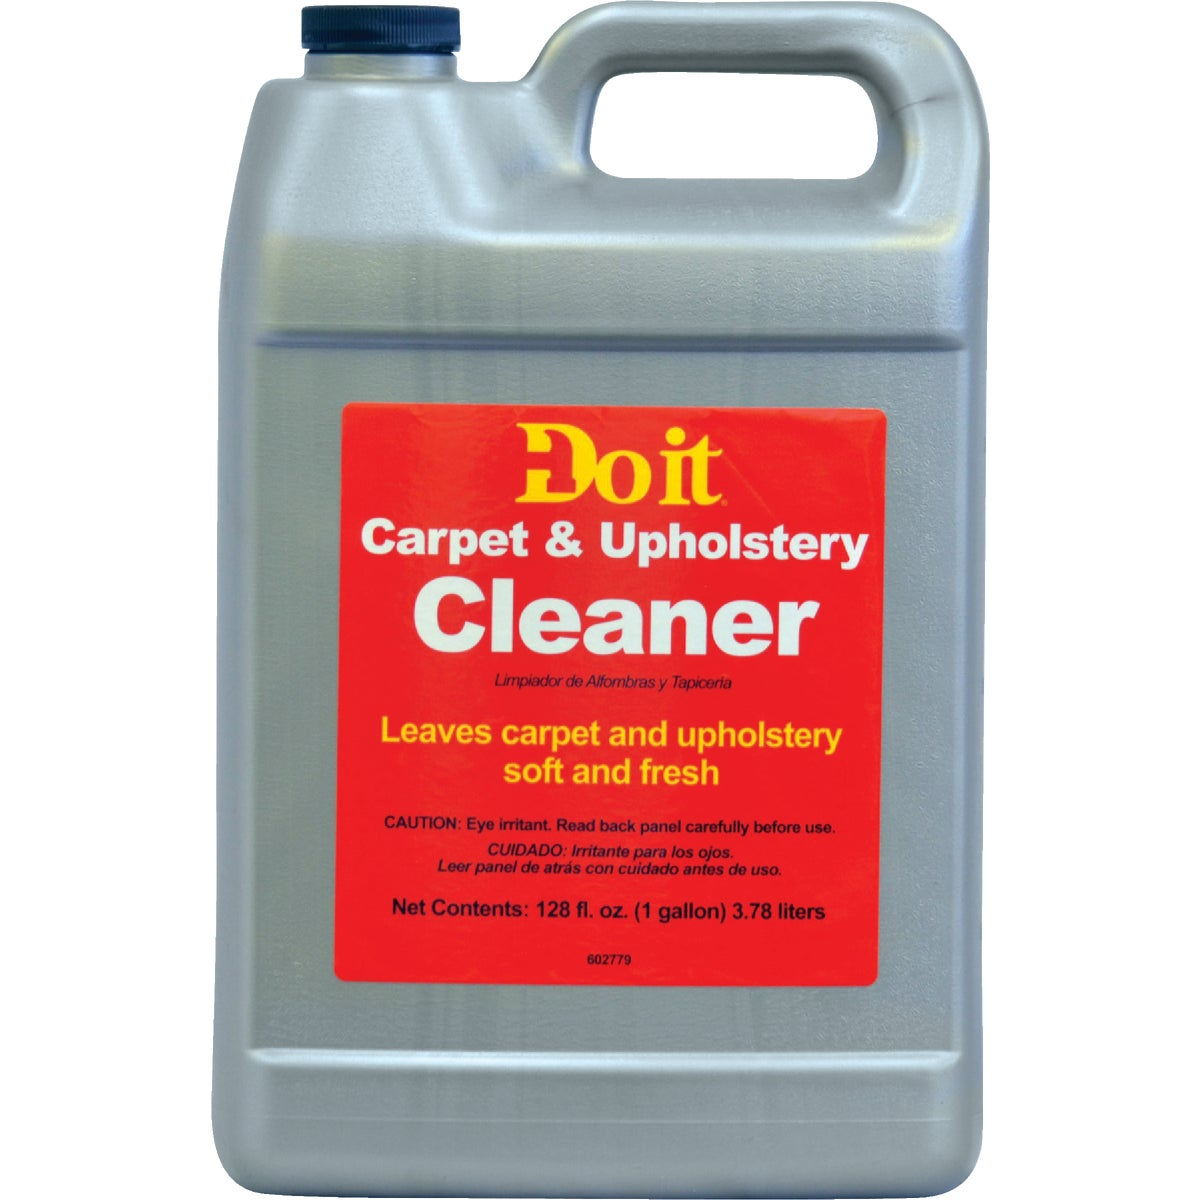 Do it Carpet and Upholstery Cleaner